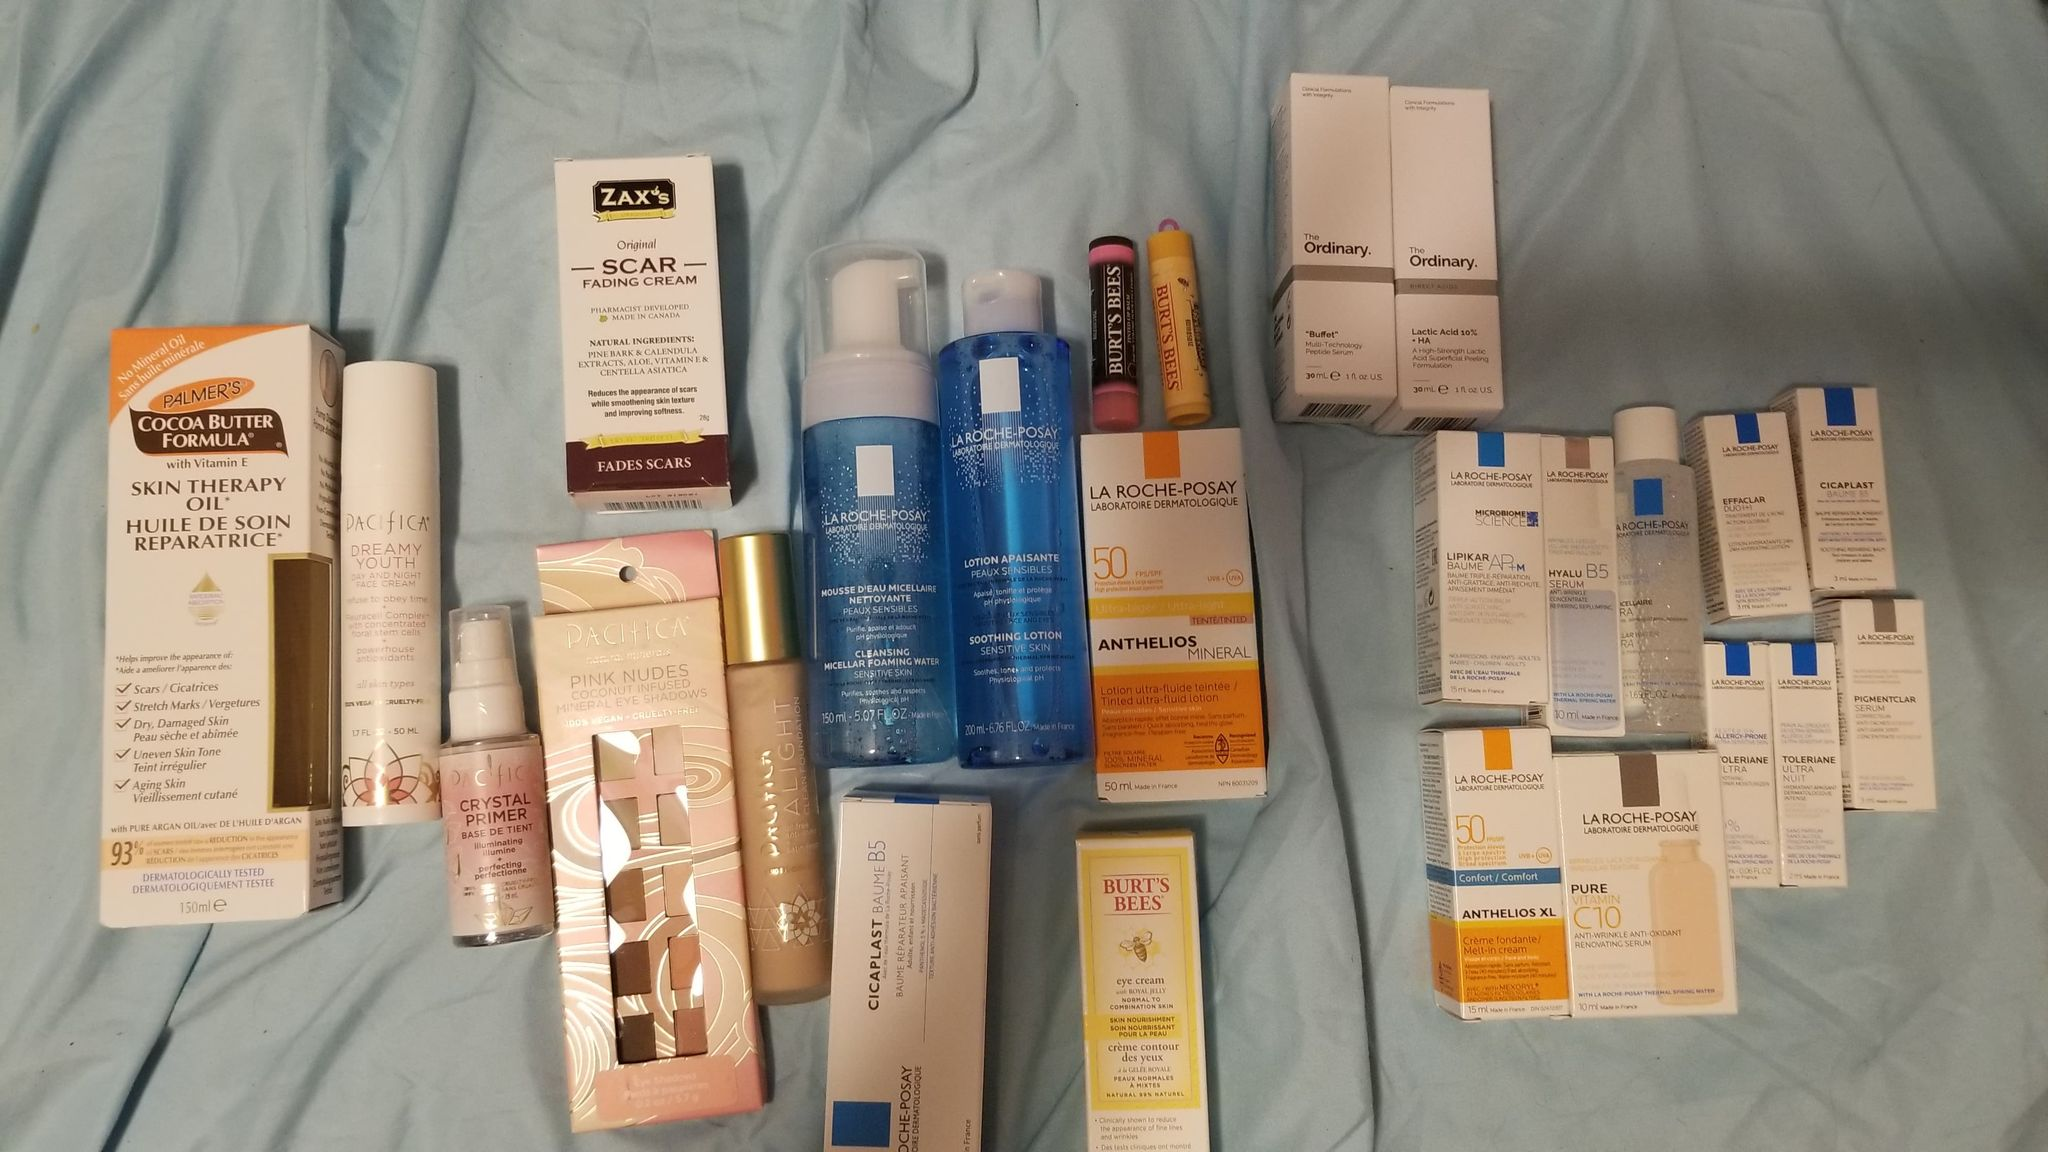 [Haul] My order from a month ago finally came (Realized I already had the foundation lol), Lots of La Roche small sample gift pack too. Got my bf to get me The Ordinary stuff today. When do I stop buying products?